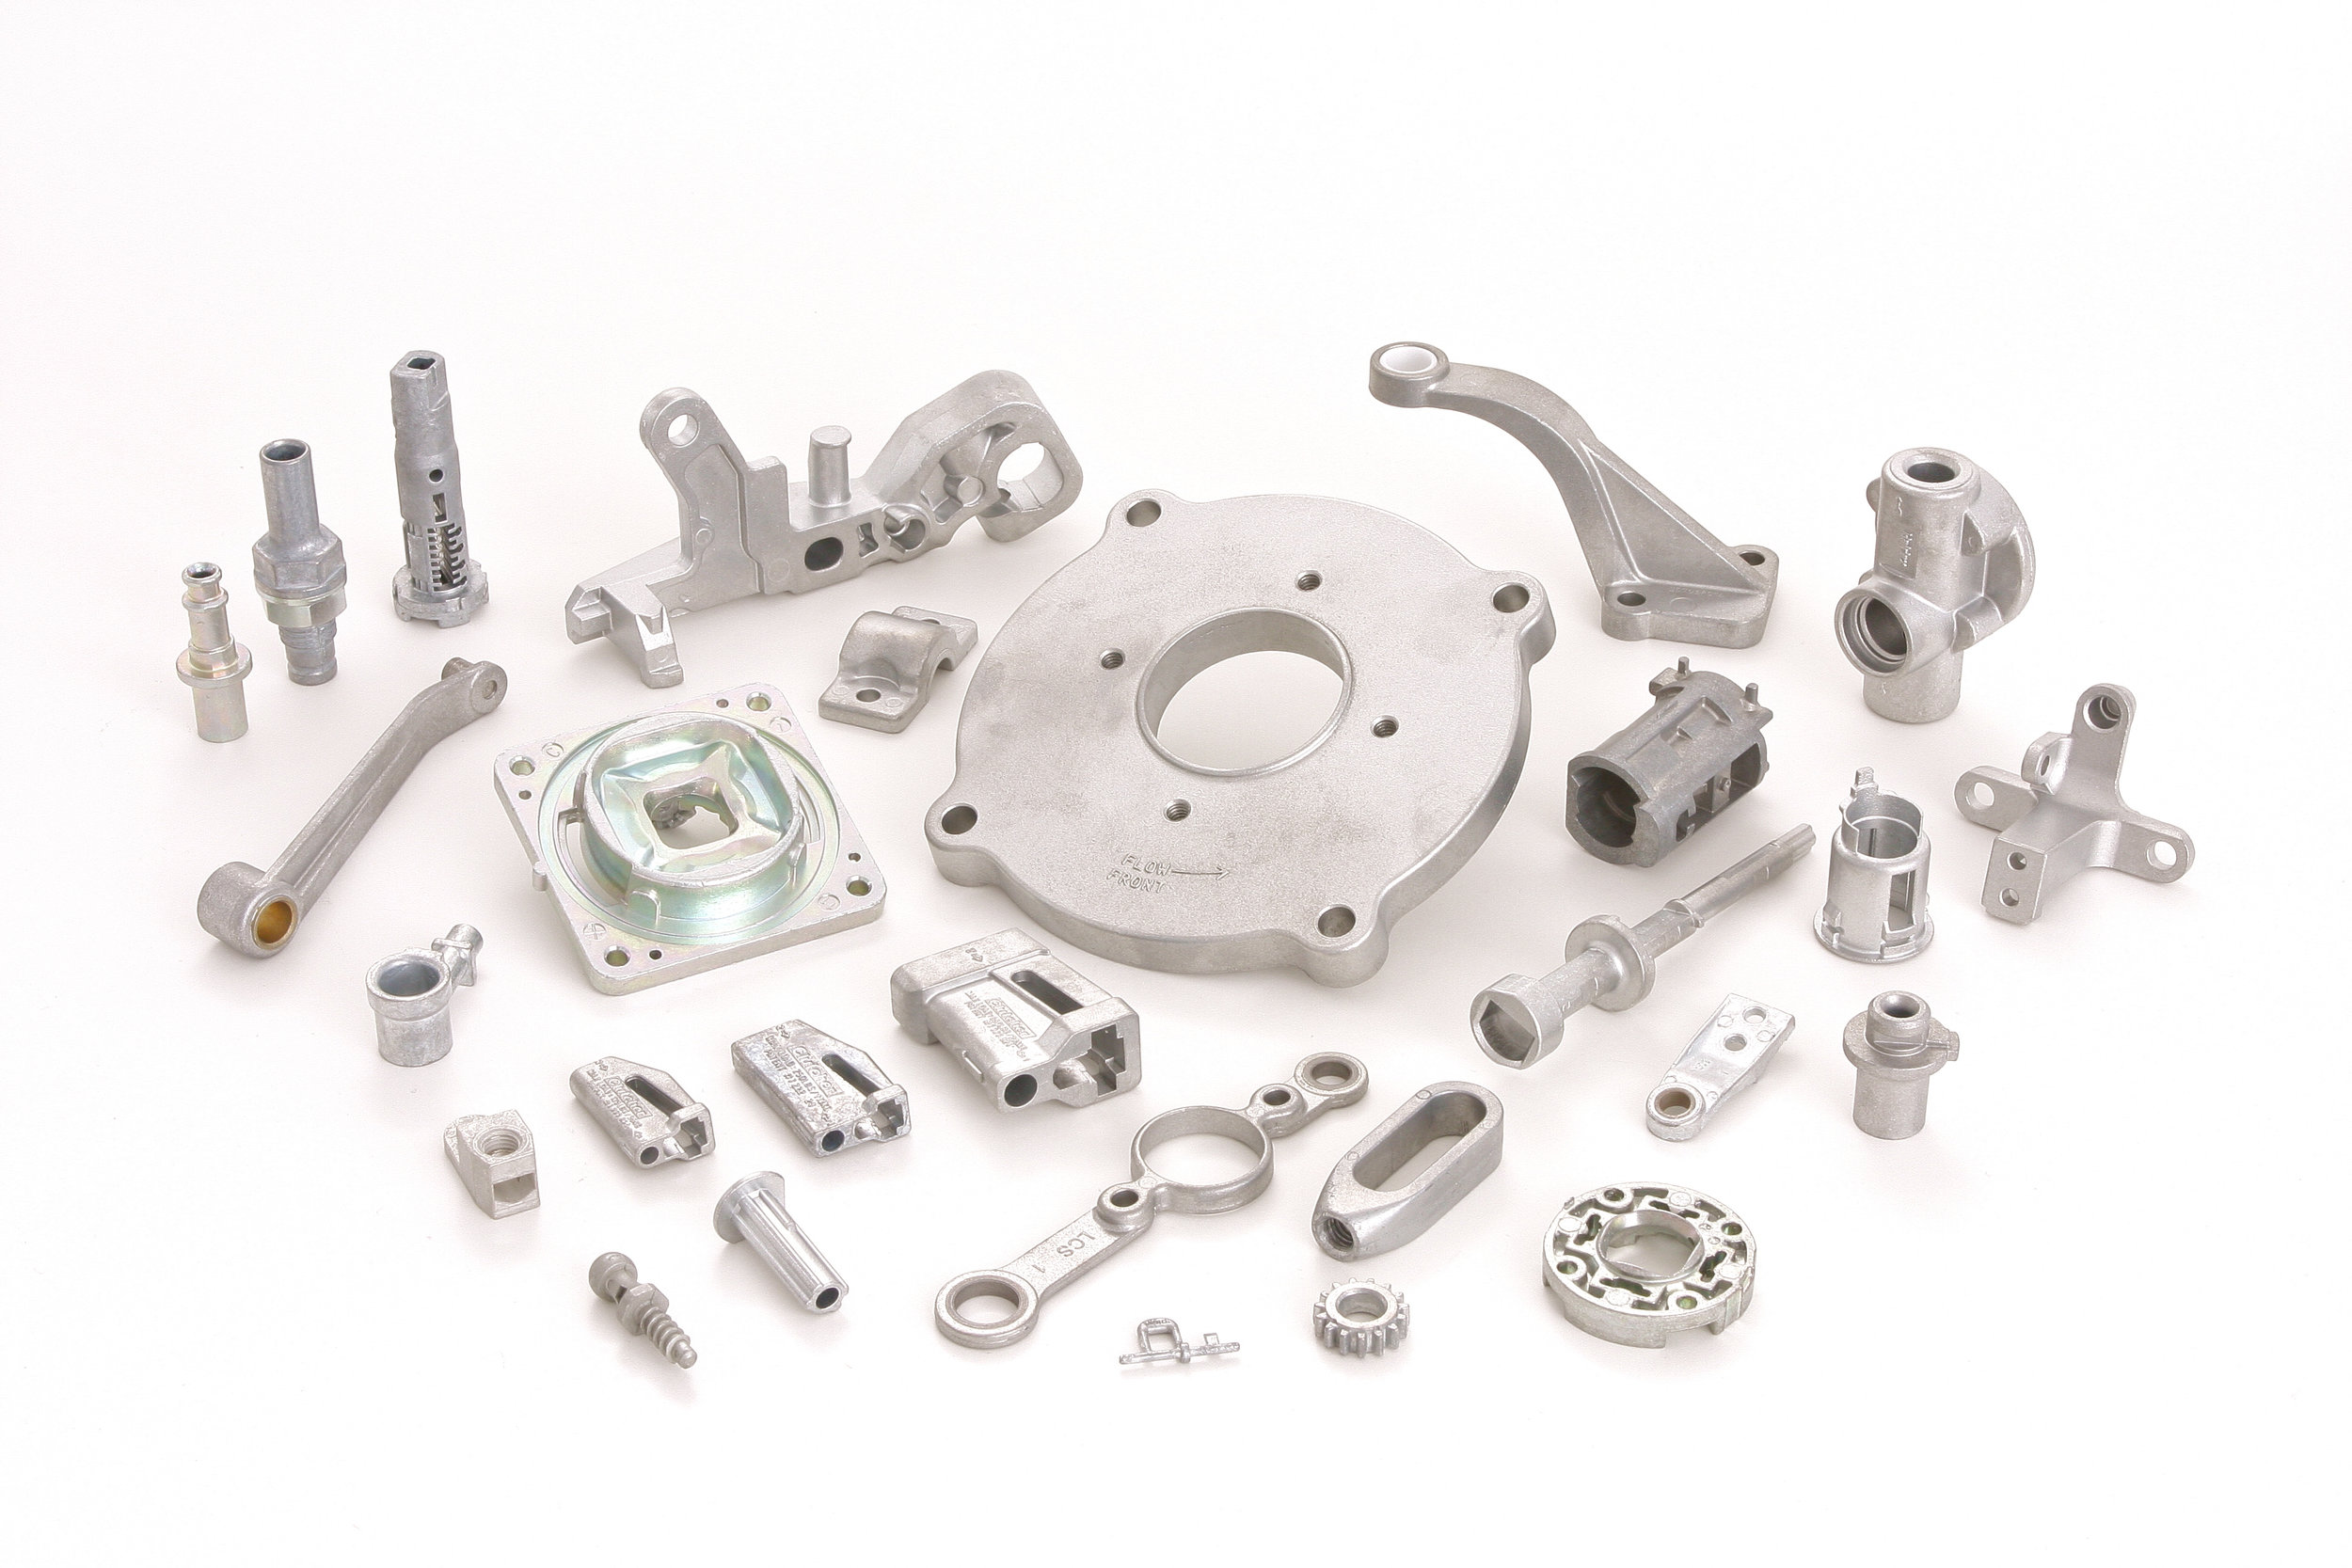 Zinc Castings vs forging - Zinc die castings produce more complex shapes with closer tolerances, thinner walls, and lower finishing costs. Cast core holes are not available with forging.